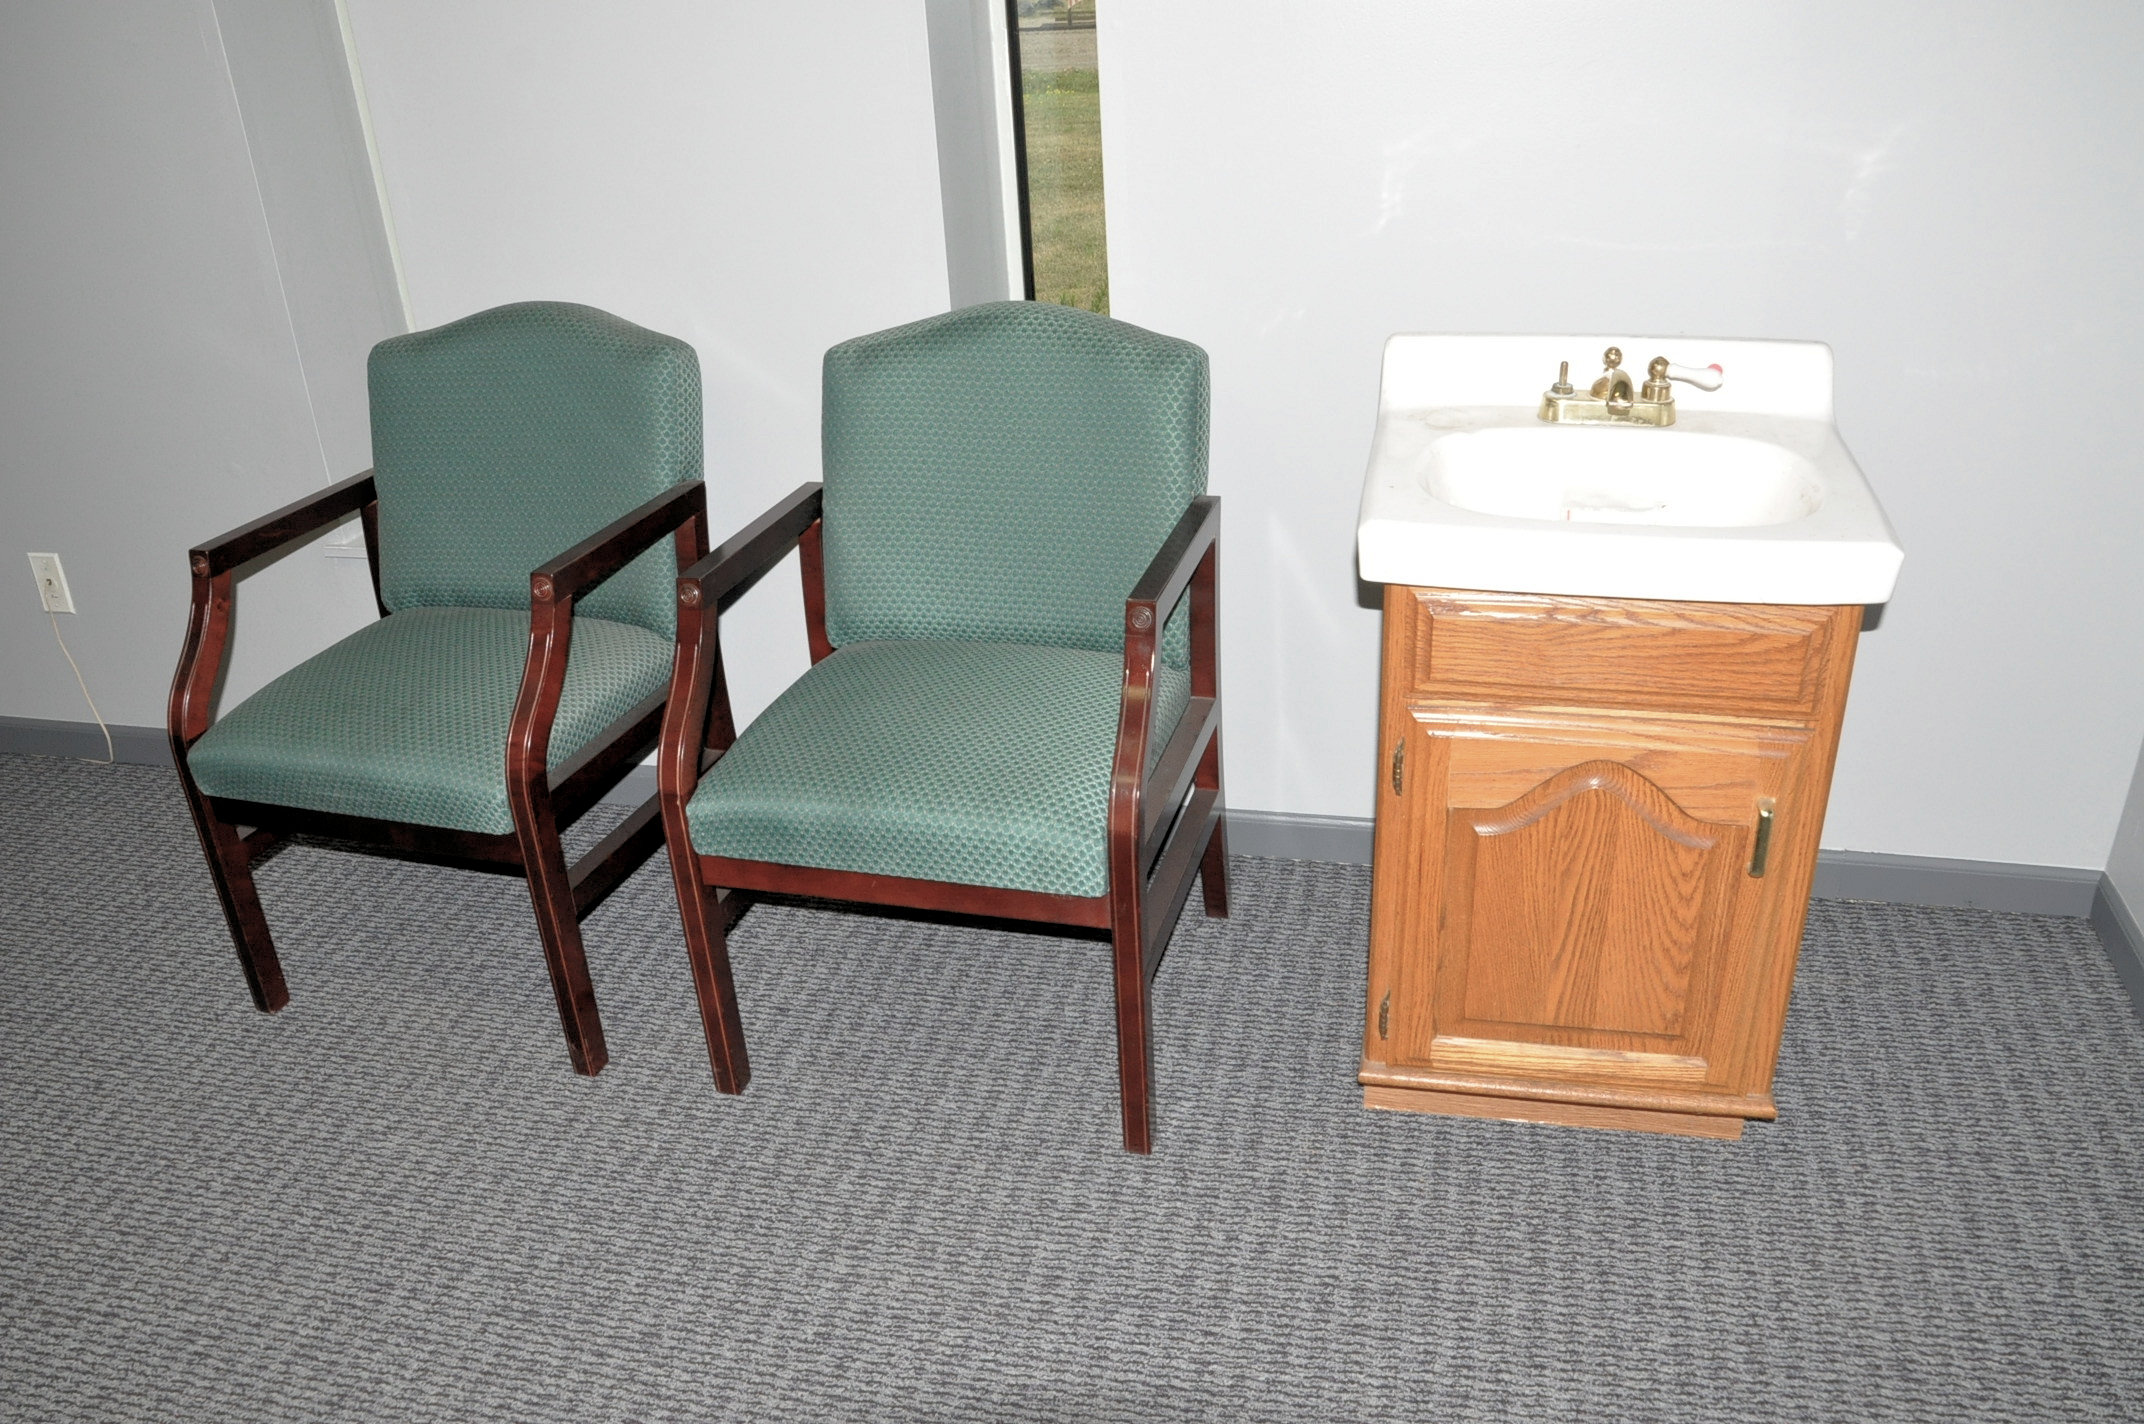 Desk, Credenza, (3) Chairs and Vanity - Image 4 of 6